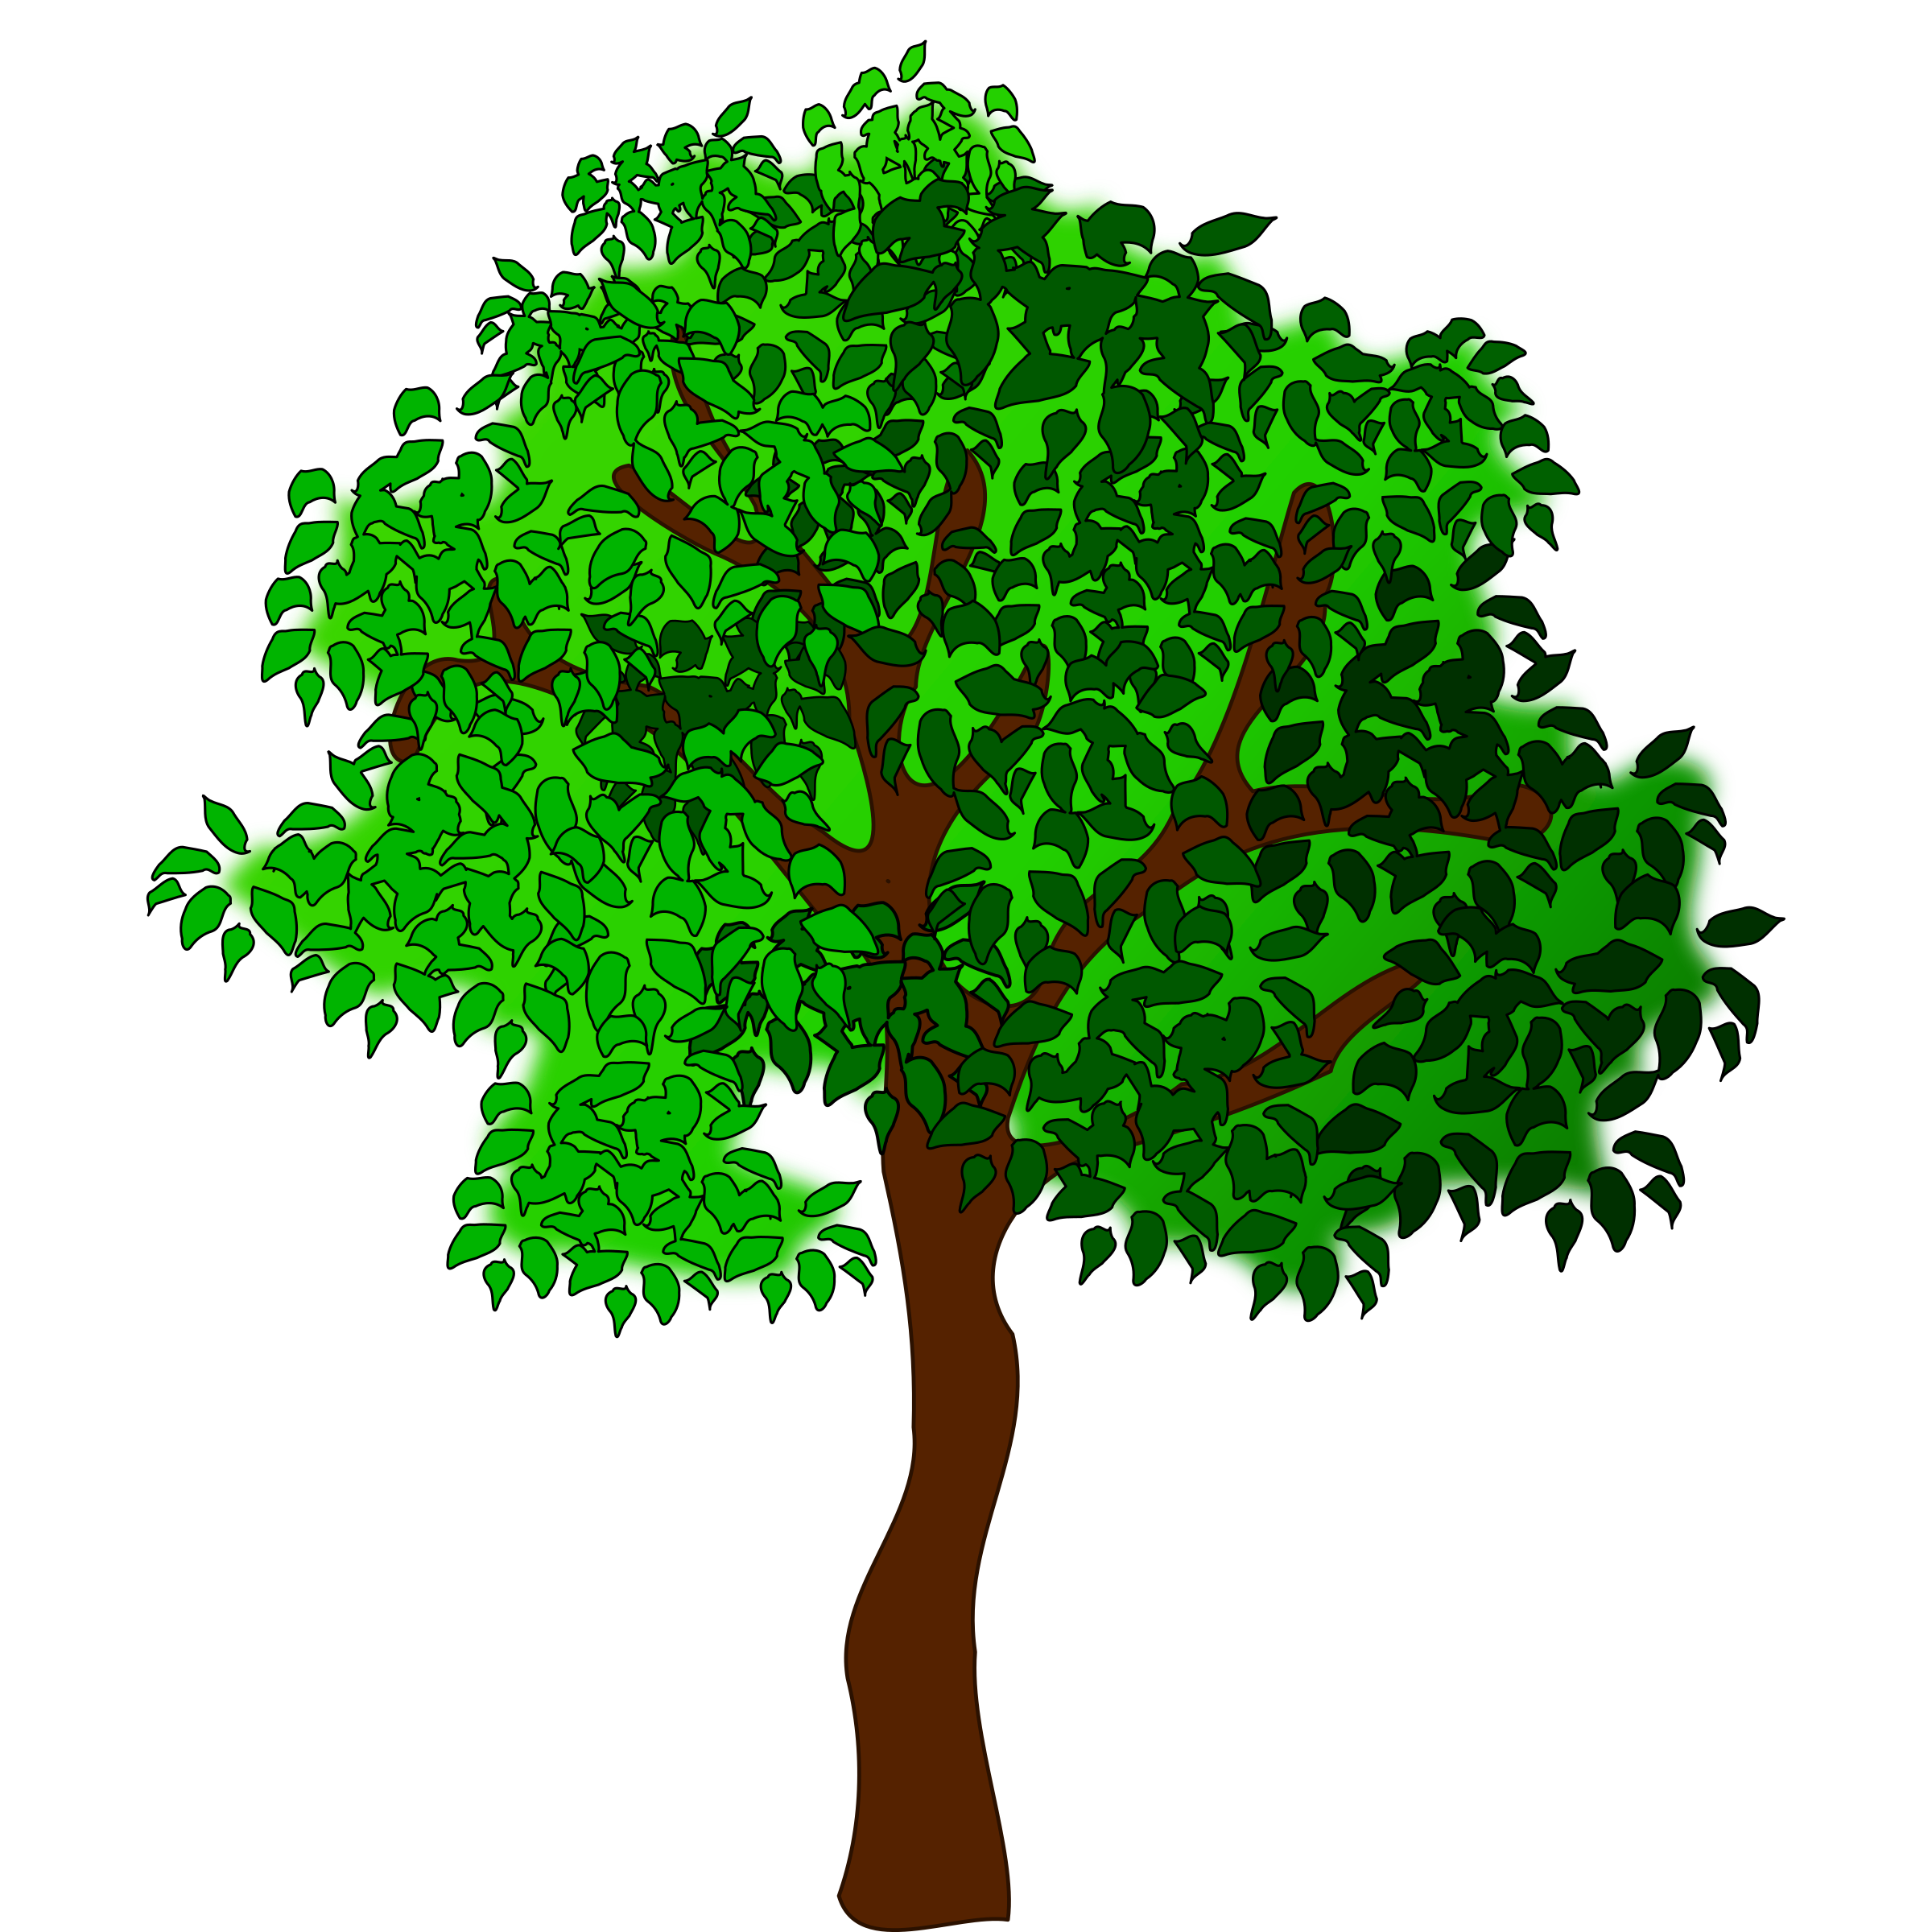 Summer green tree clipart 20 free Cliparts | Download ...